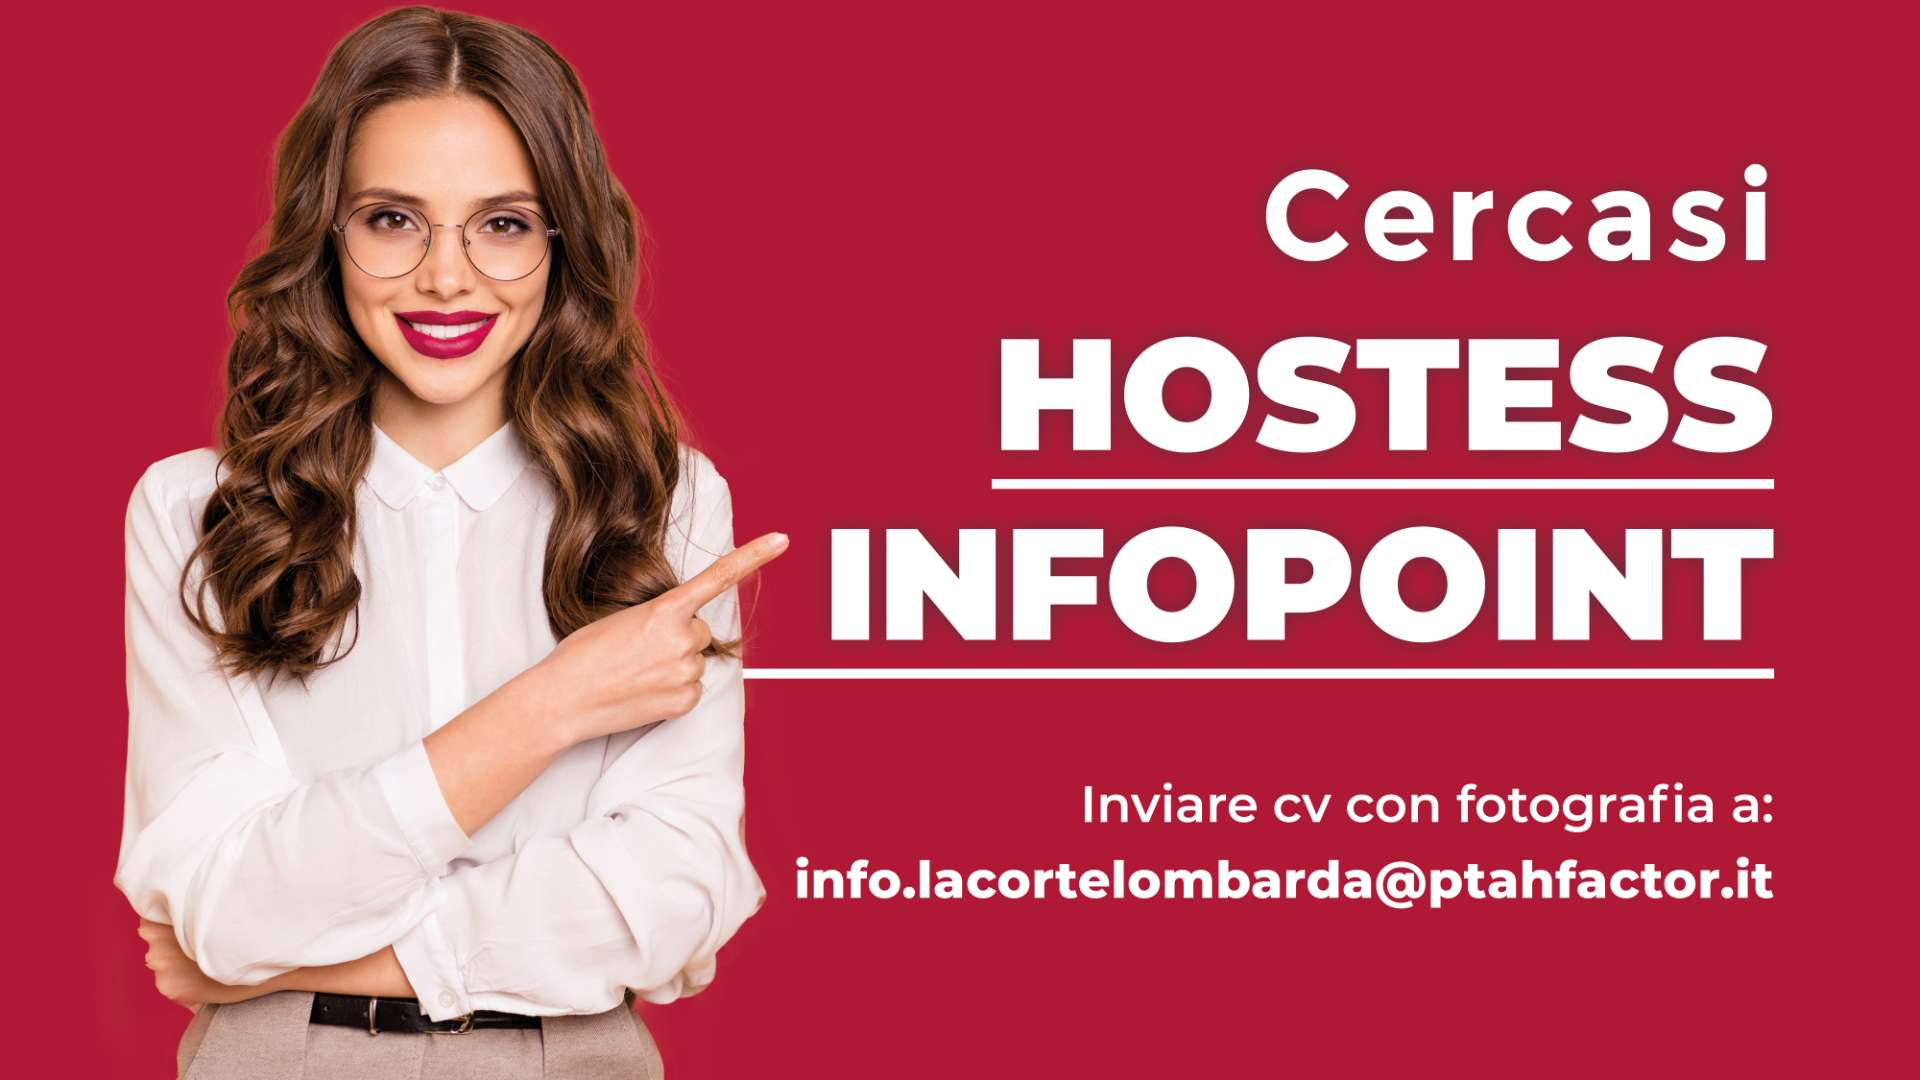 Cercasi Hostess Infopoint